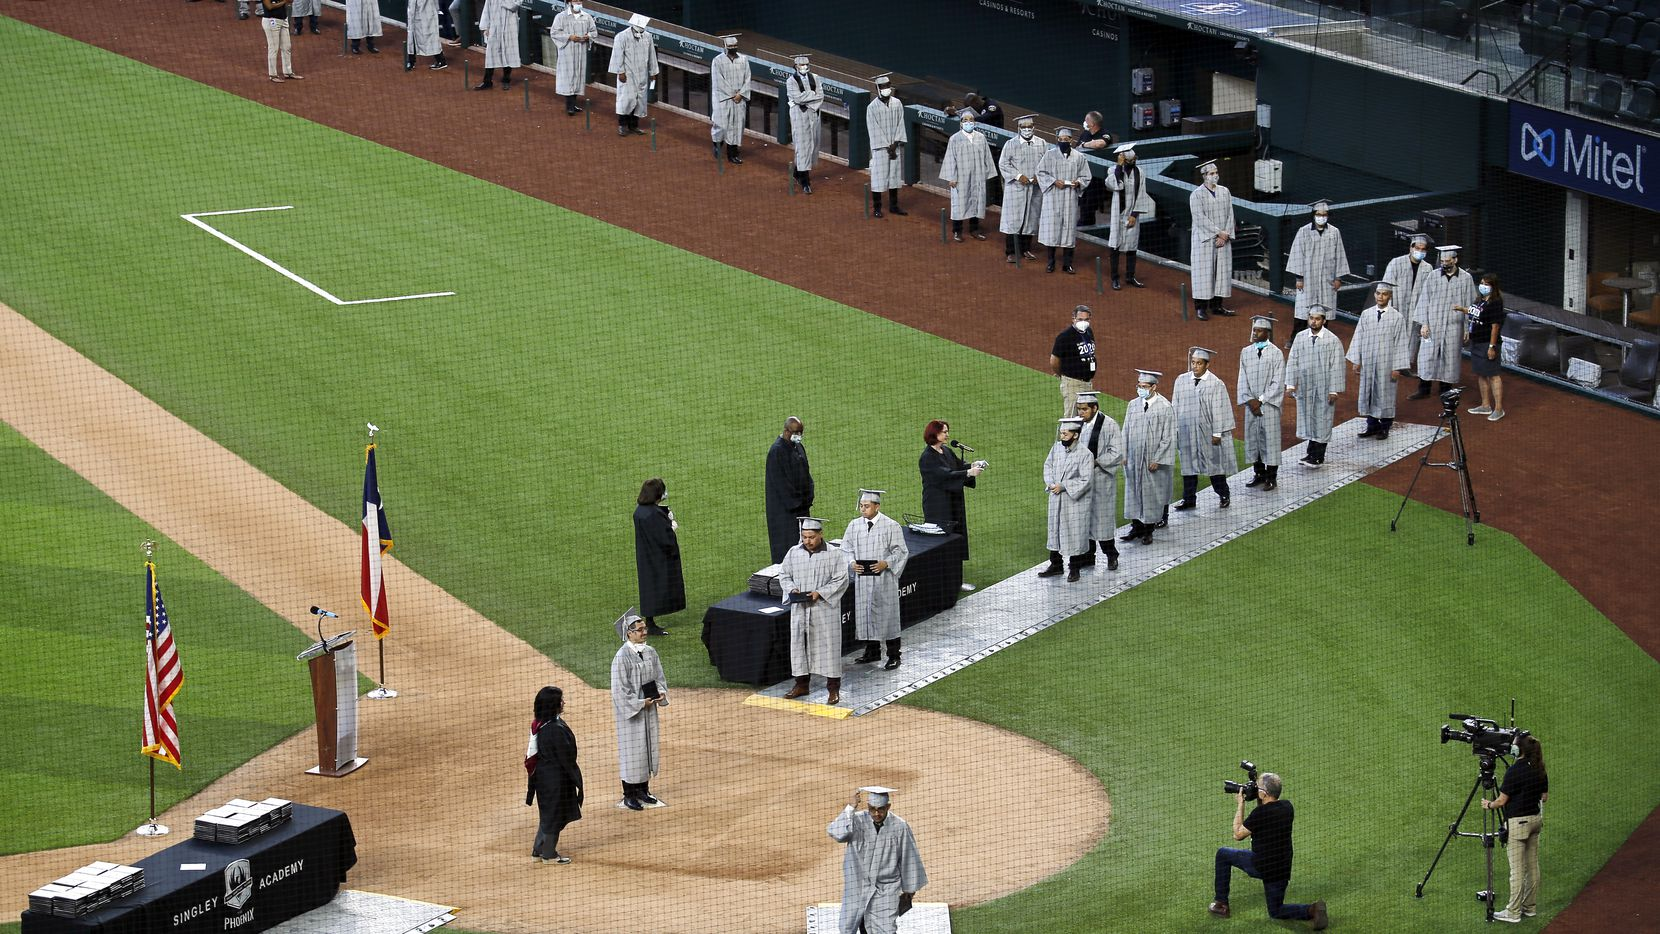 Irving's Jack E. Singley Academy graduates file past the Texas Rangers dugout, onto the field and across home plate where they have a photo made with their diploma at Globe Life Field in Arlington, Texas, Friday, May 29 2020. The graduation ceremony is the first public event held at the newly constructed ballpark. Because of the COVID-19 pandemic, previous events including the start of the Texas Rangers season have been put on hold. Singley Academy is the first of 49 graduations from 18 Independent School Districts in North Texas that will take place at Globe Life Field through the end of June.